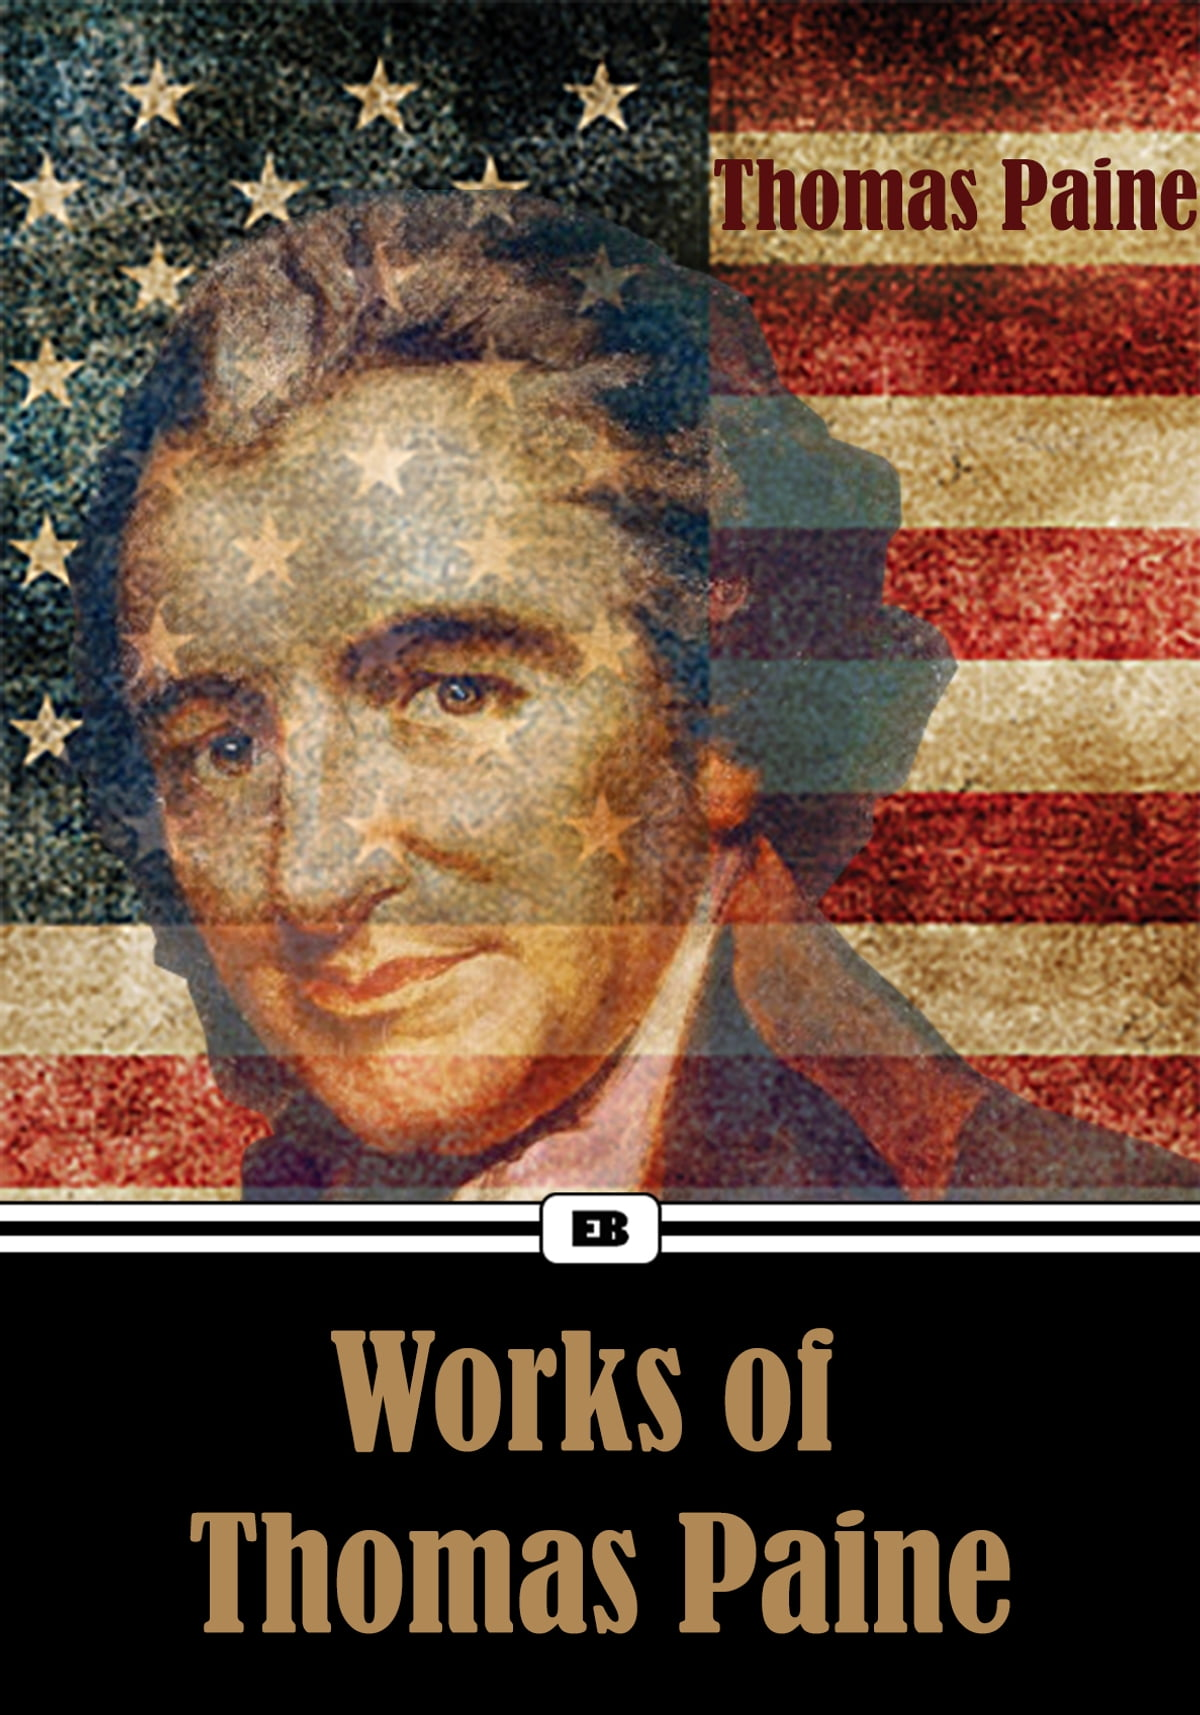 Complete Works Of Thomas Paine Common Sense American